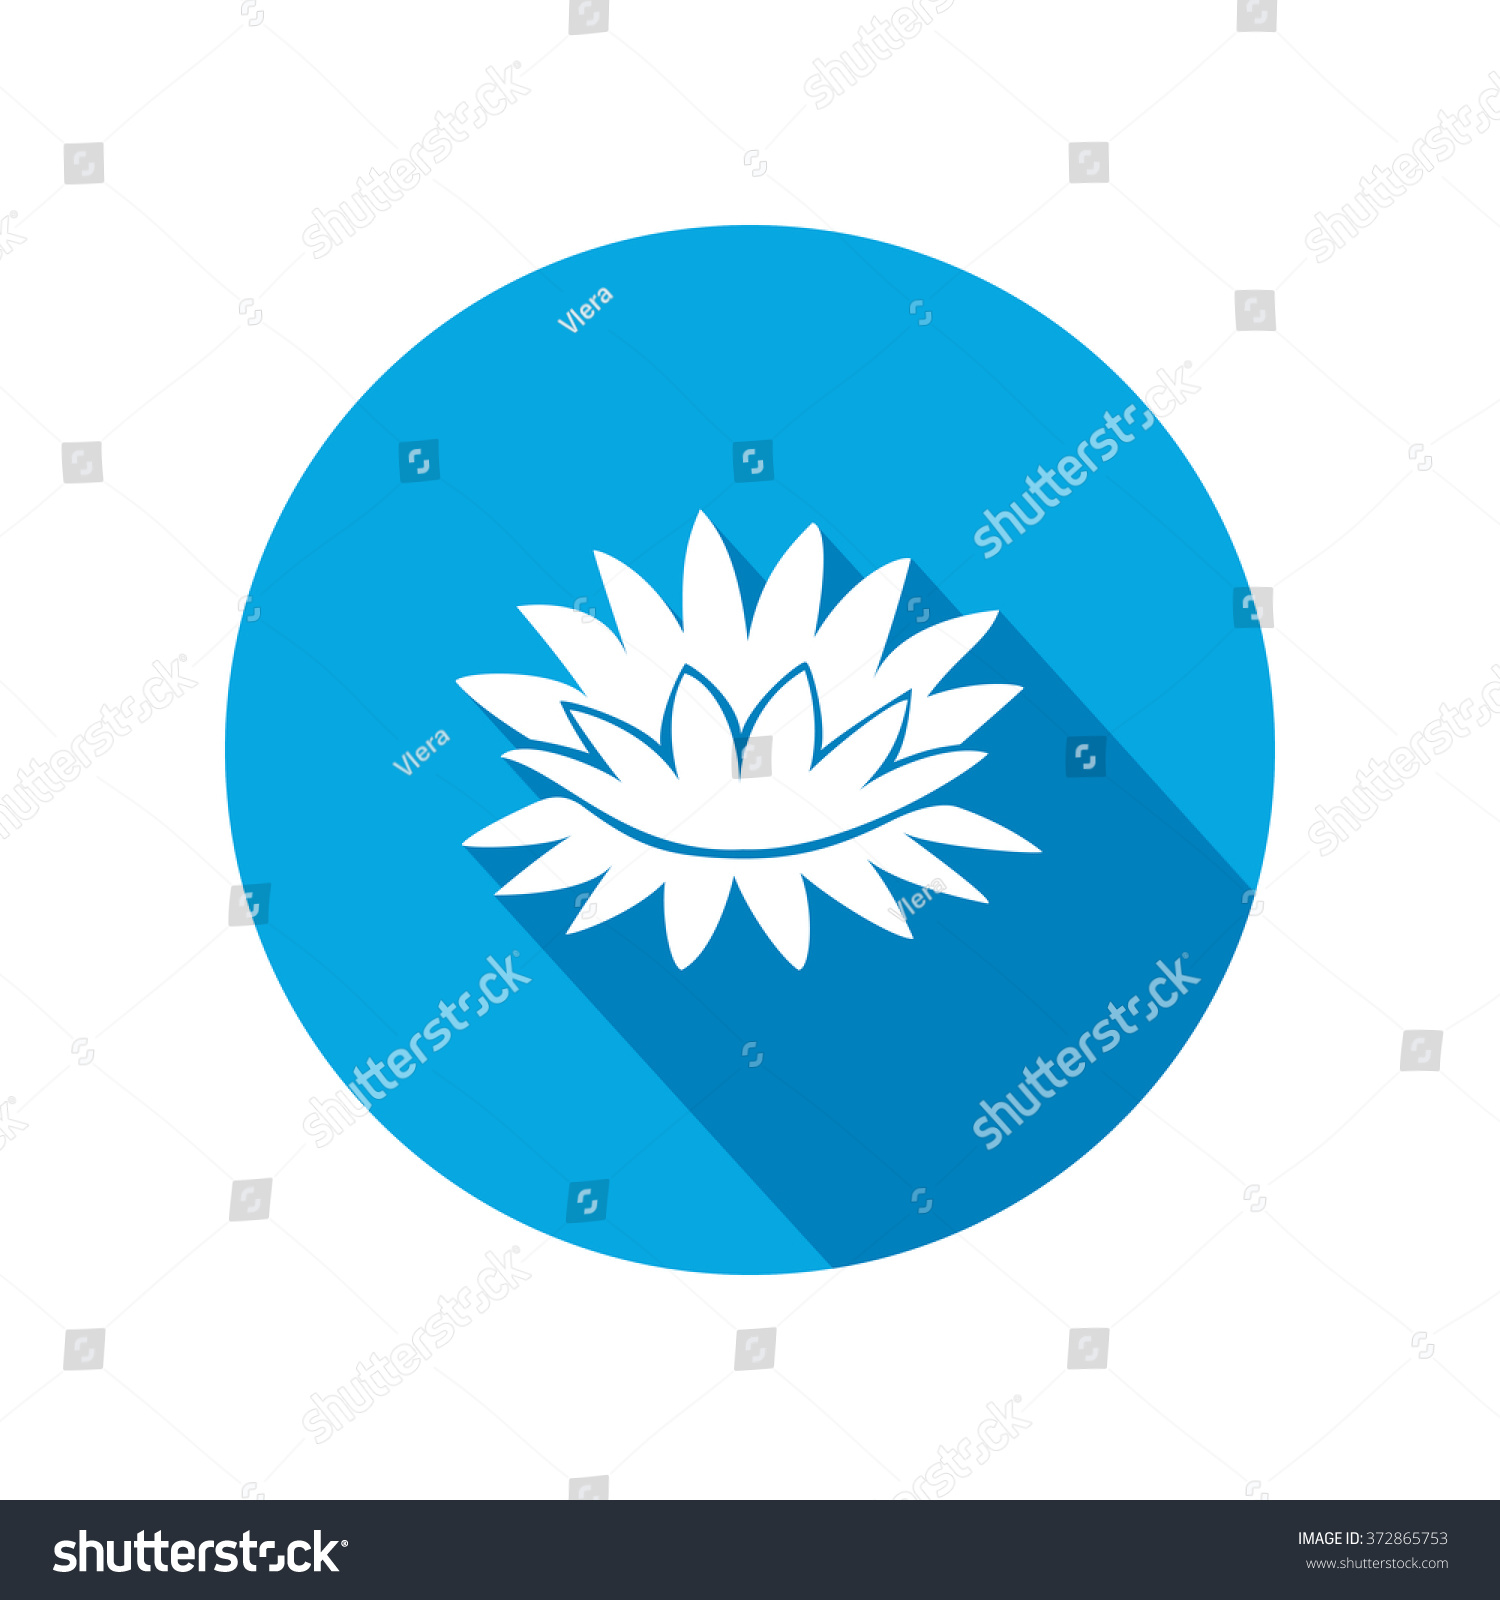 Lily flower icons waterlilies floral symbol stock illustration lily flower icons water lilies floral symbol round circle flat icon with long izmirmasajfo Choice Image